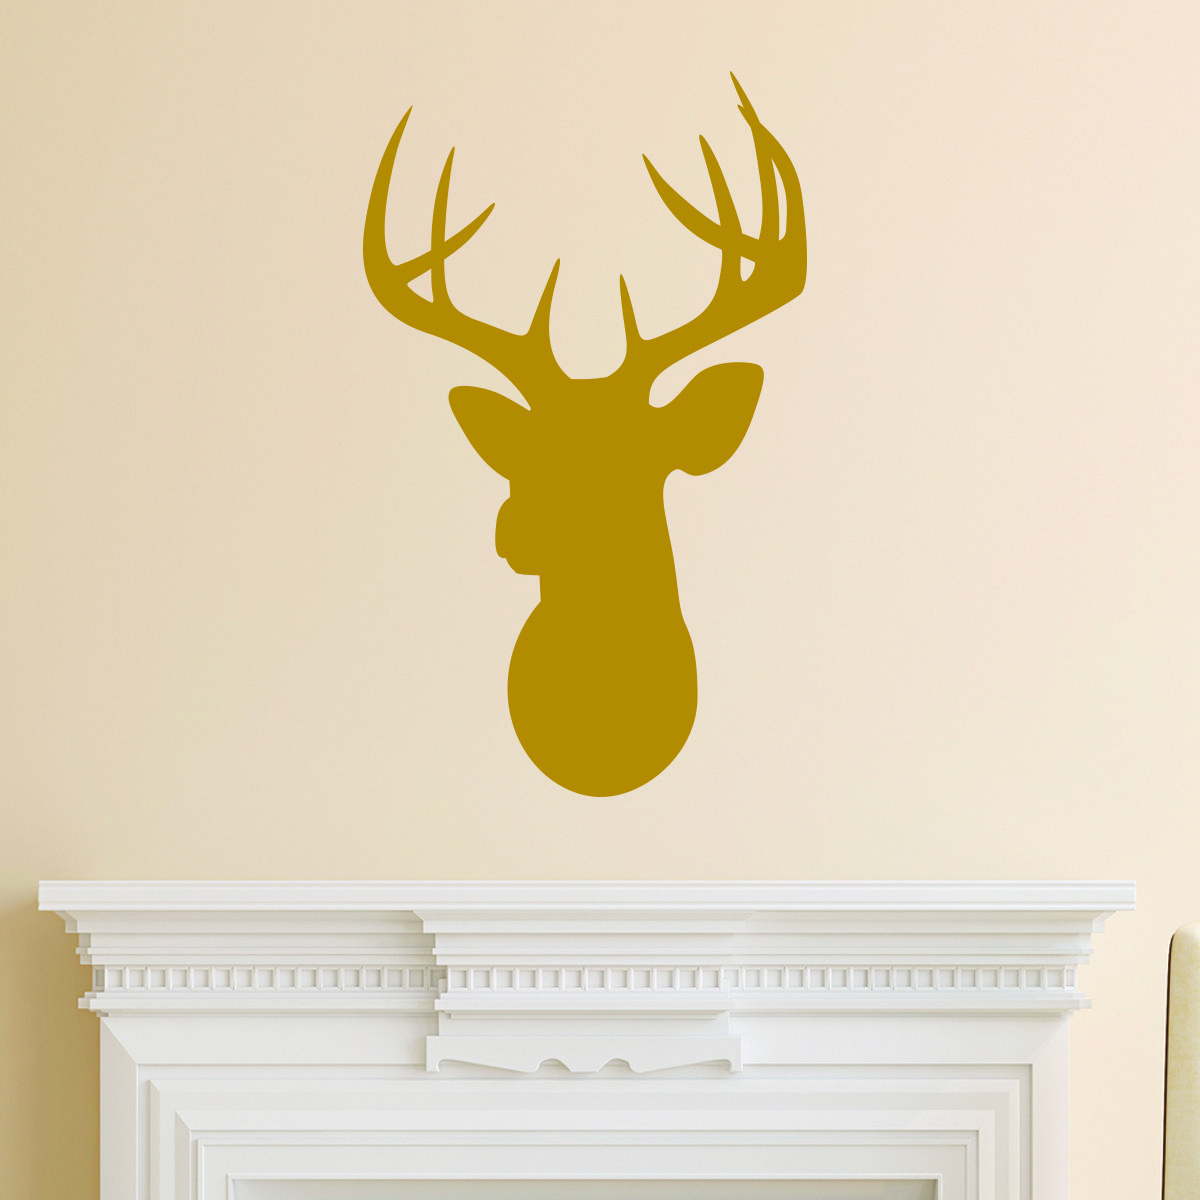 Luxury Wall Art Silhouettes Pictures - All About Wallart ...